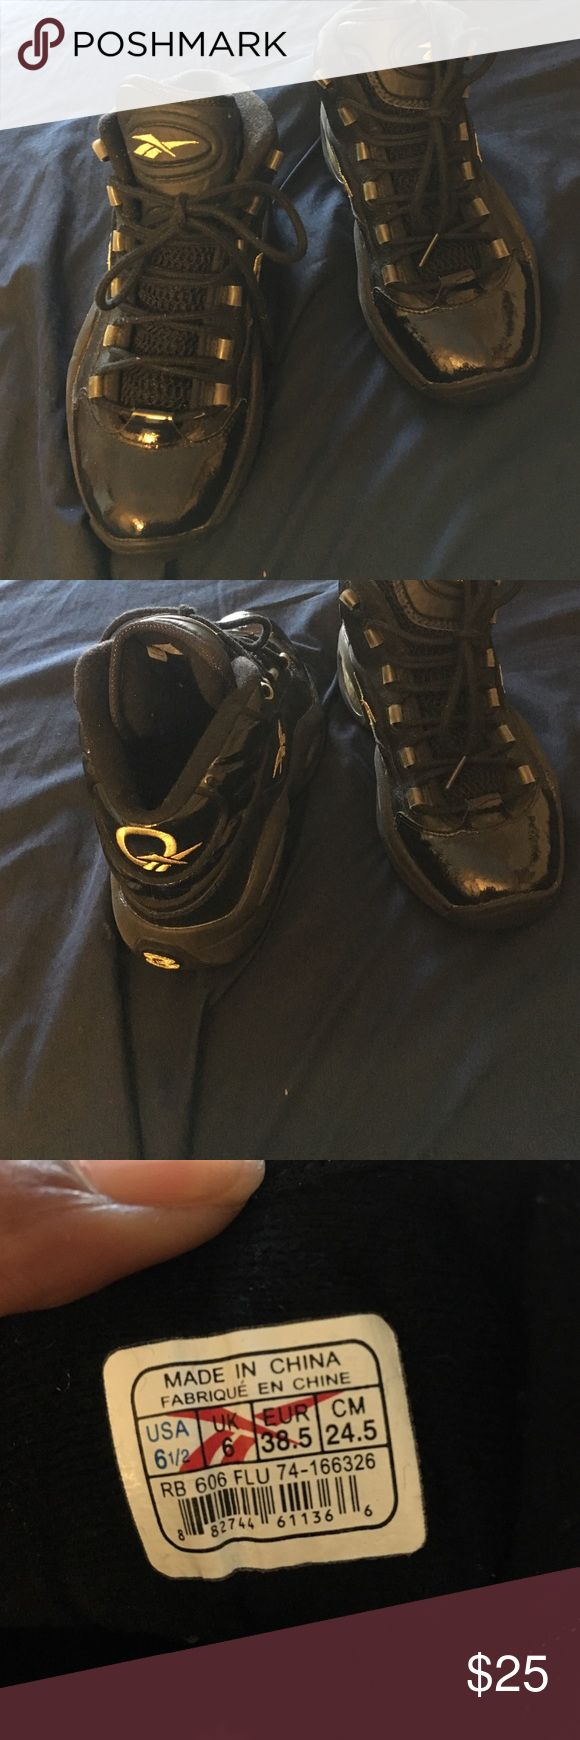 Black and gold Allen Iverson Boy sneakers Black and gold boy size 61/2 Allen Iverson's great for back to school. In awesome condition. Reebok Allen Iverson Shoes Sneakers